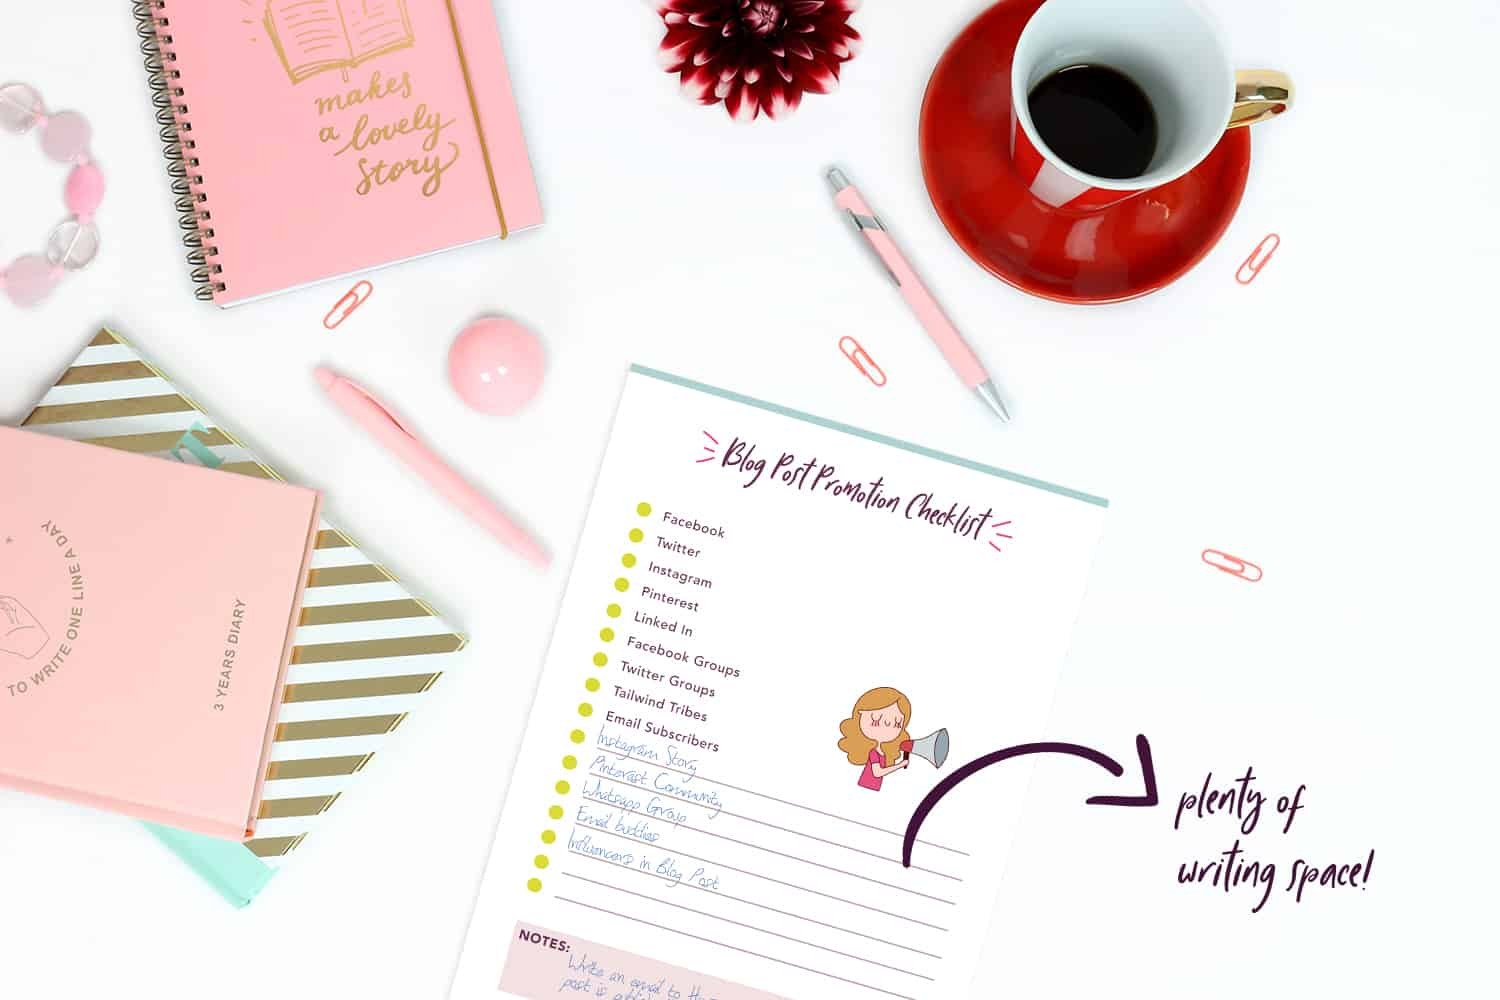 This free printable 2019 blog planner is not only super cute with little girl and cat stickers but is also super functional! Stay super organised and keep track of all your blogging goals by downloading this 12 page blog planner! #blogplanner #plannerlife #planner #girlboss #free #freeprintable #blogging